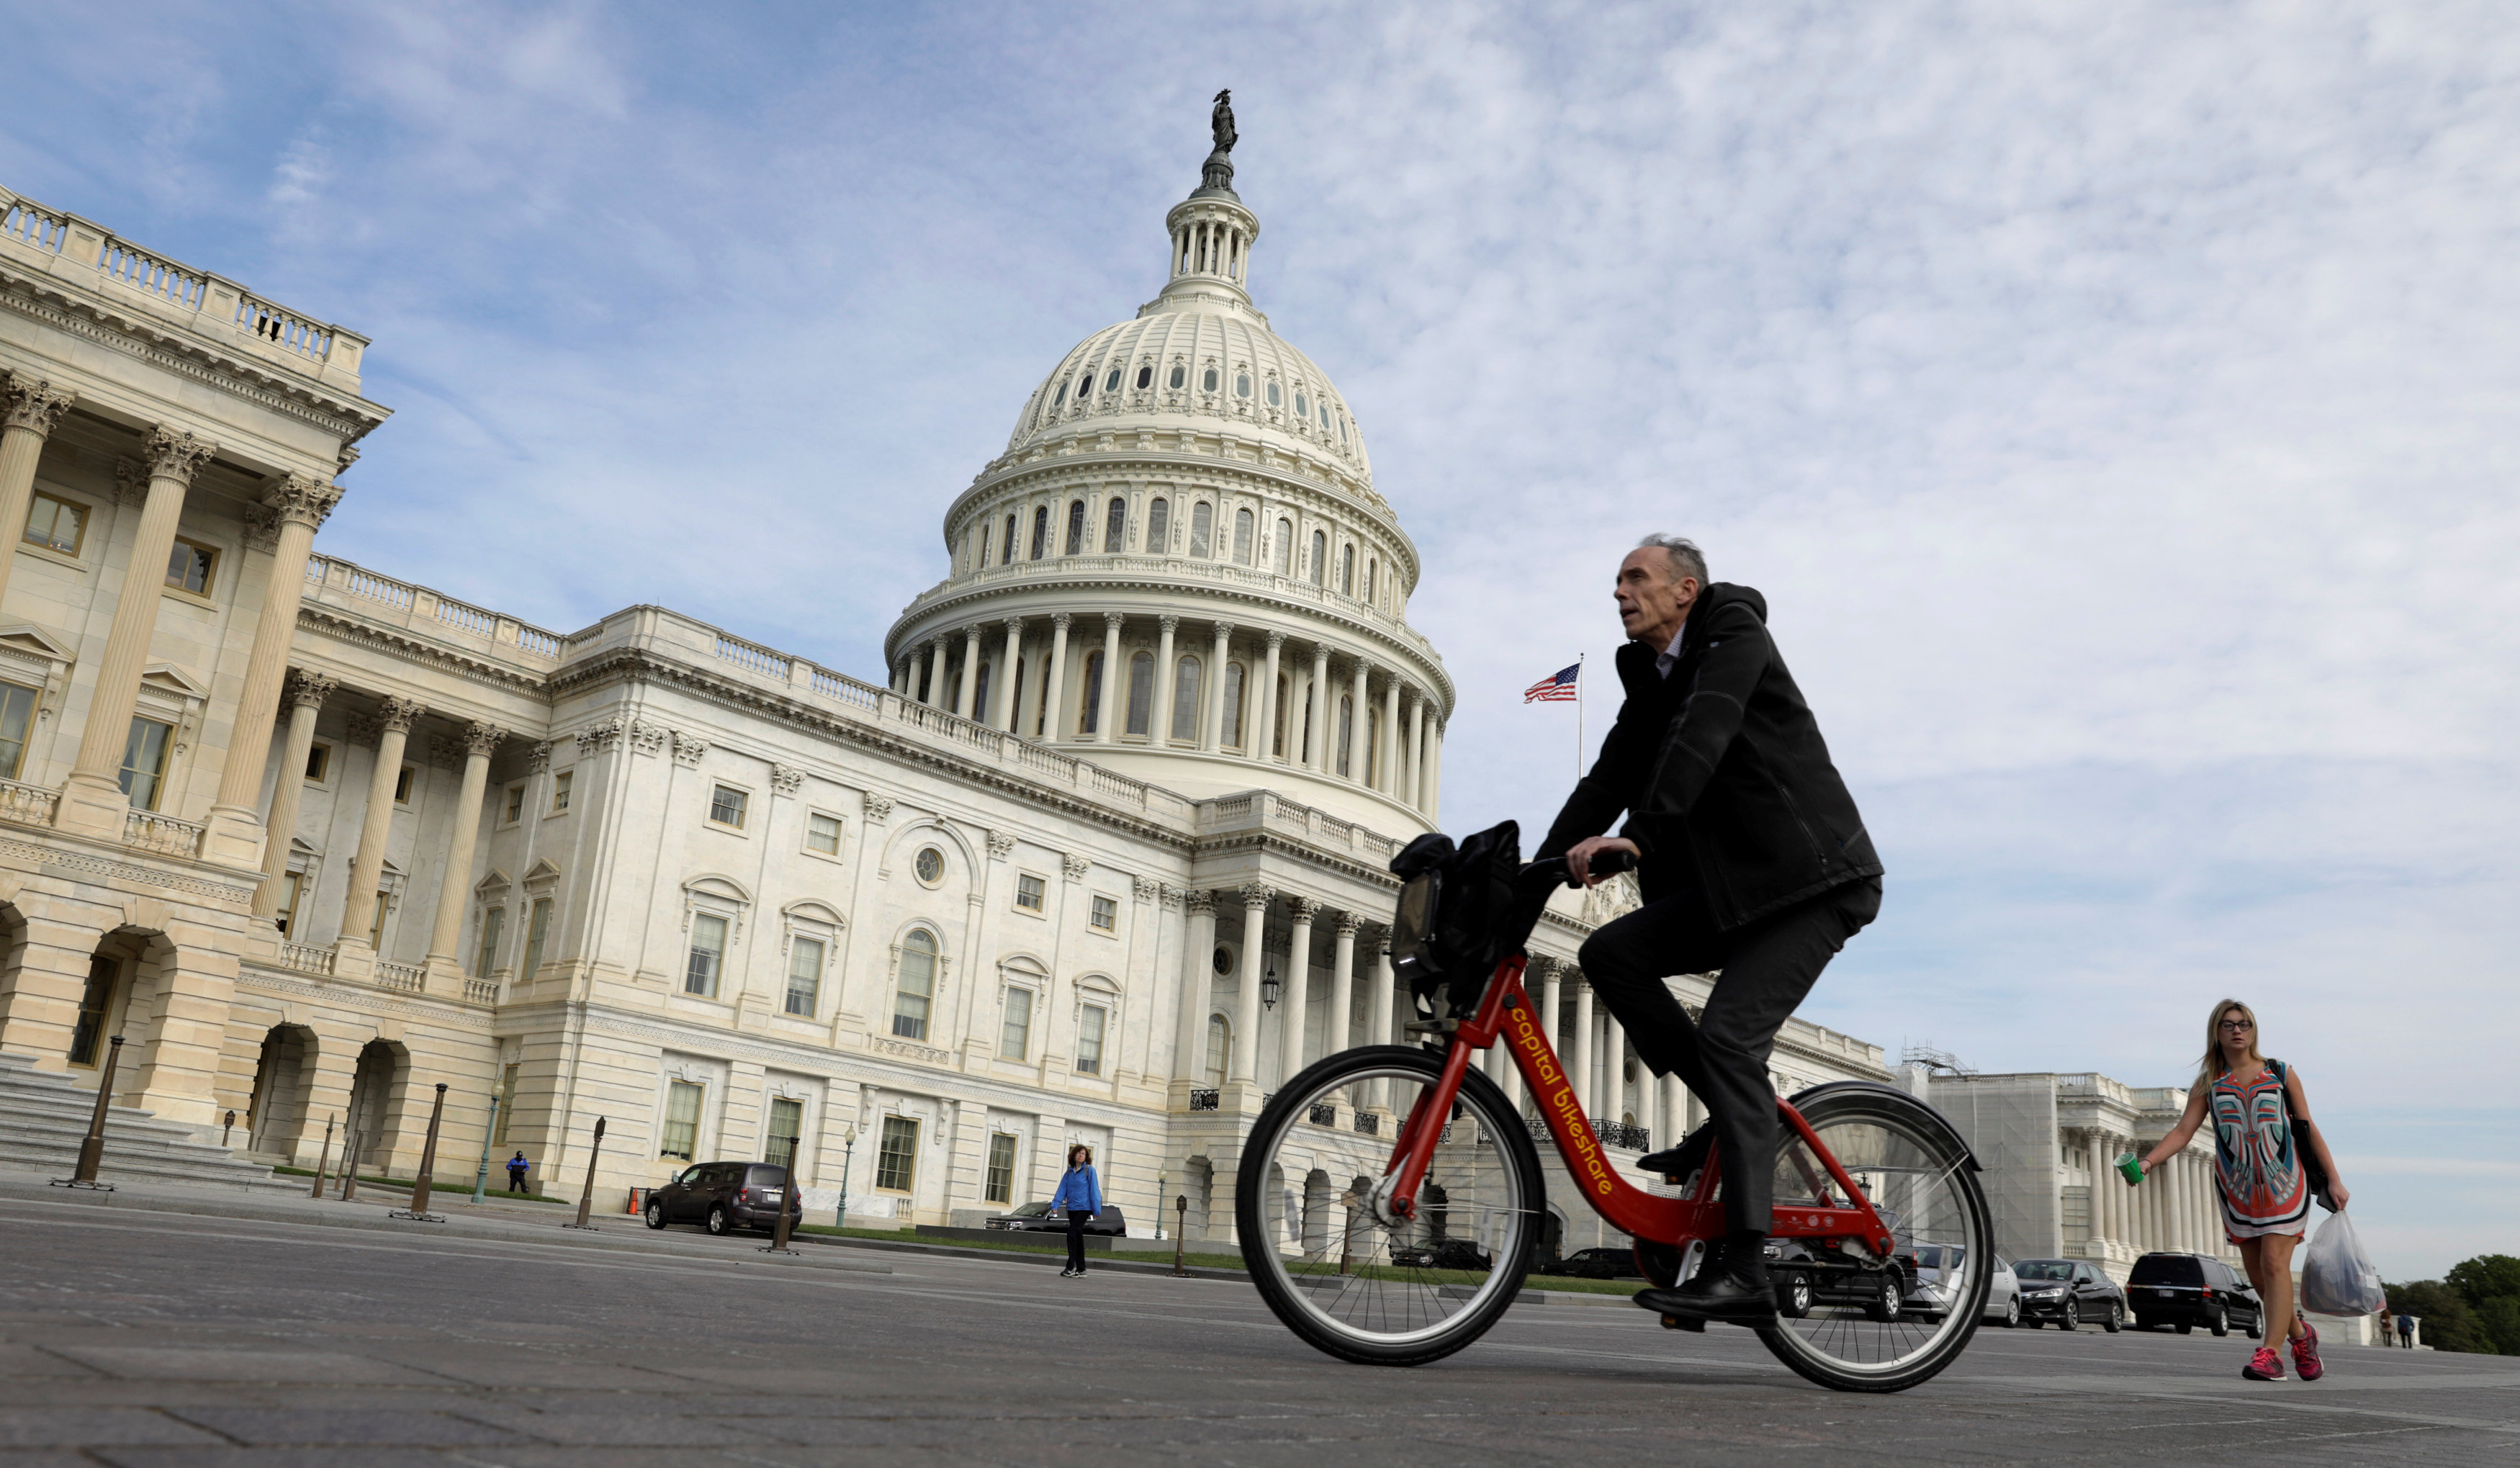 A cyclist passes the the U.S. Capitol, on the day the House is expected to vote here to repeal Obamacare in Washington on May 4, 2017. (REUTERS/Kevin Lamarque)